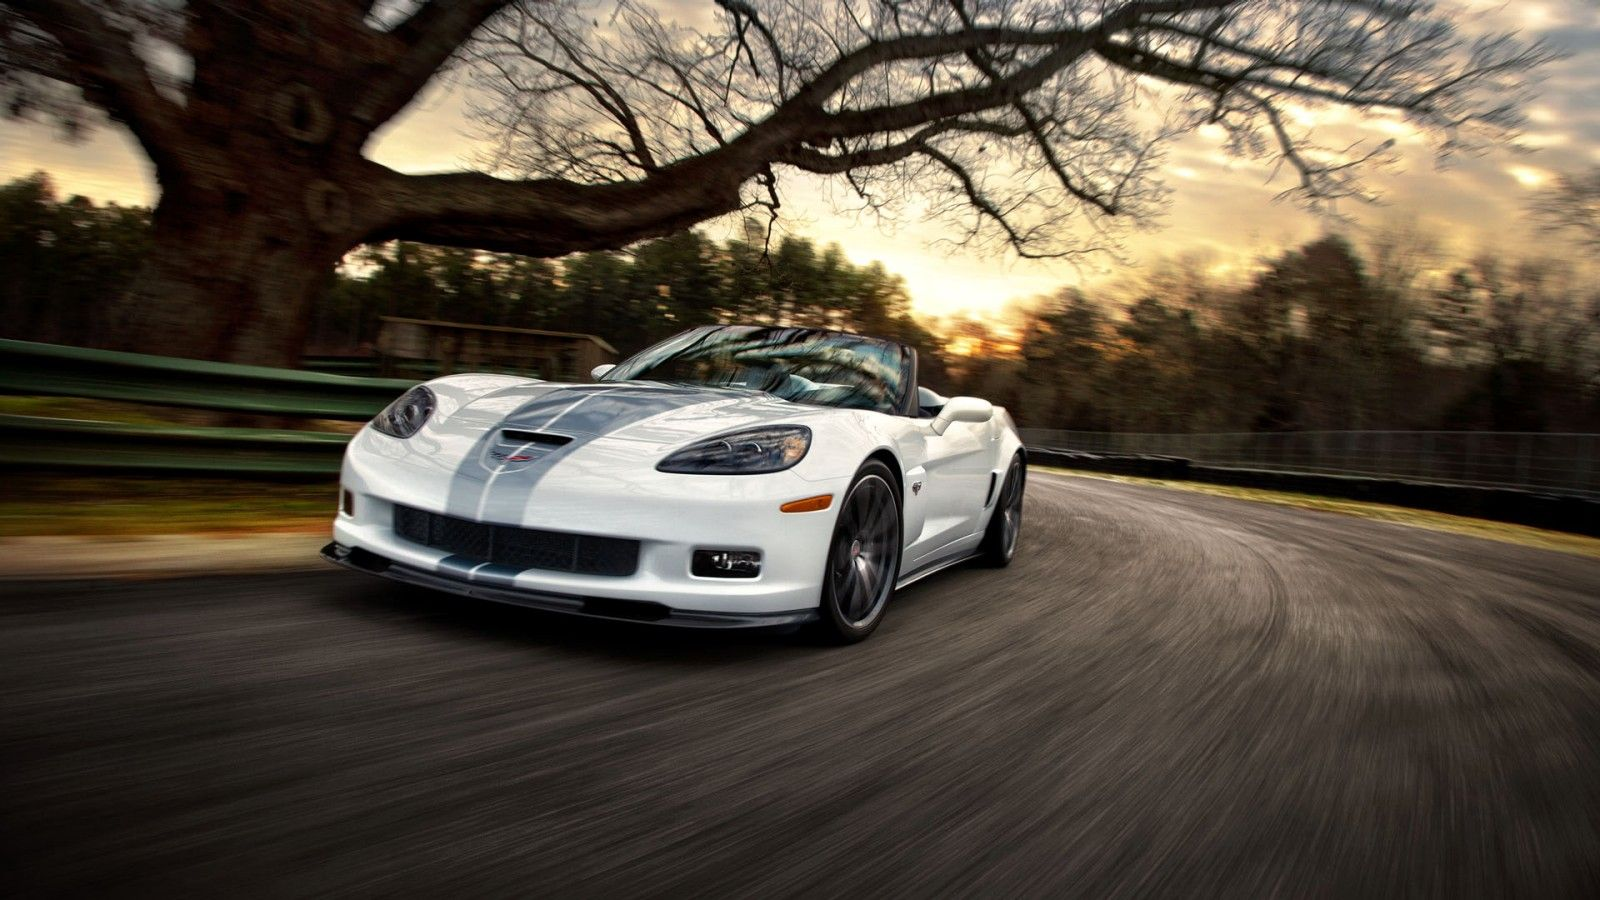 2013 Chevrolet Corvette 427 Convertible featuring